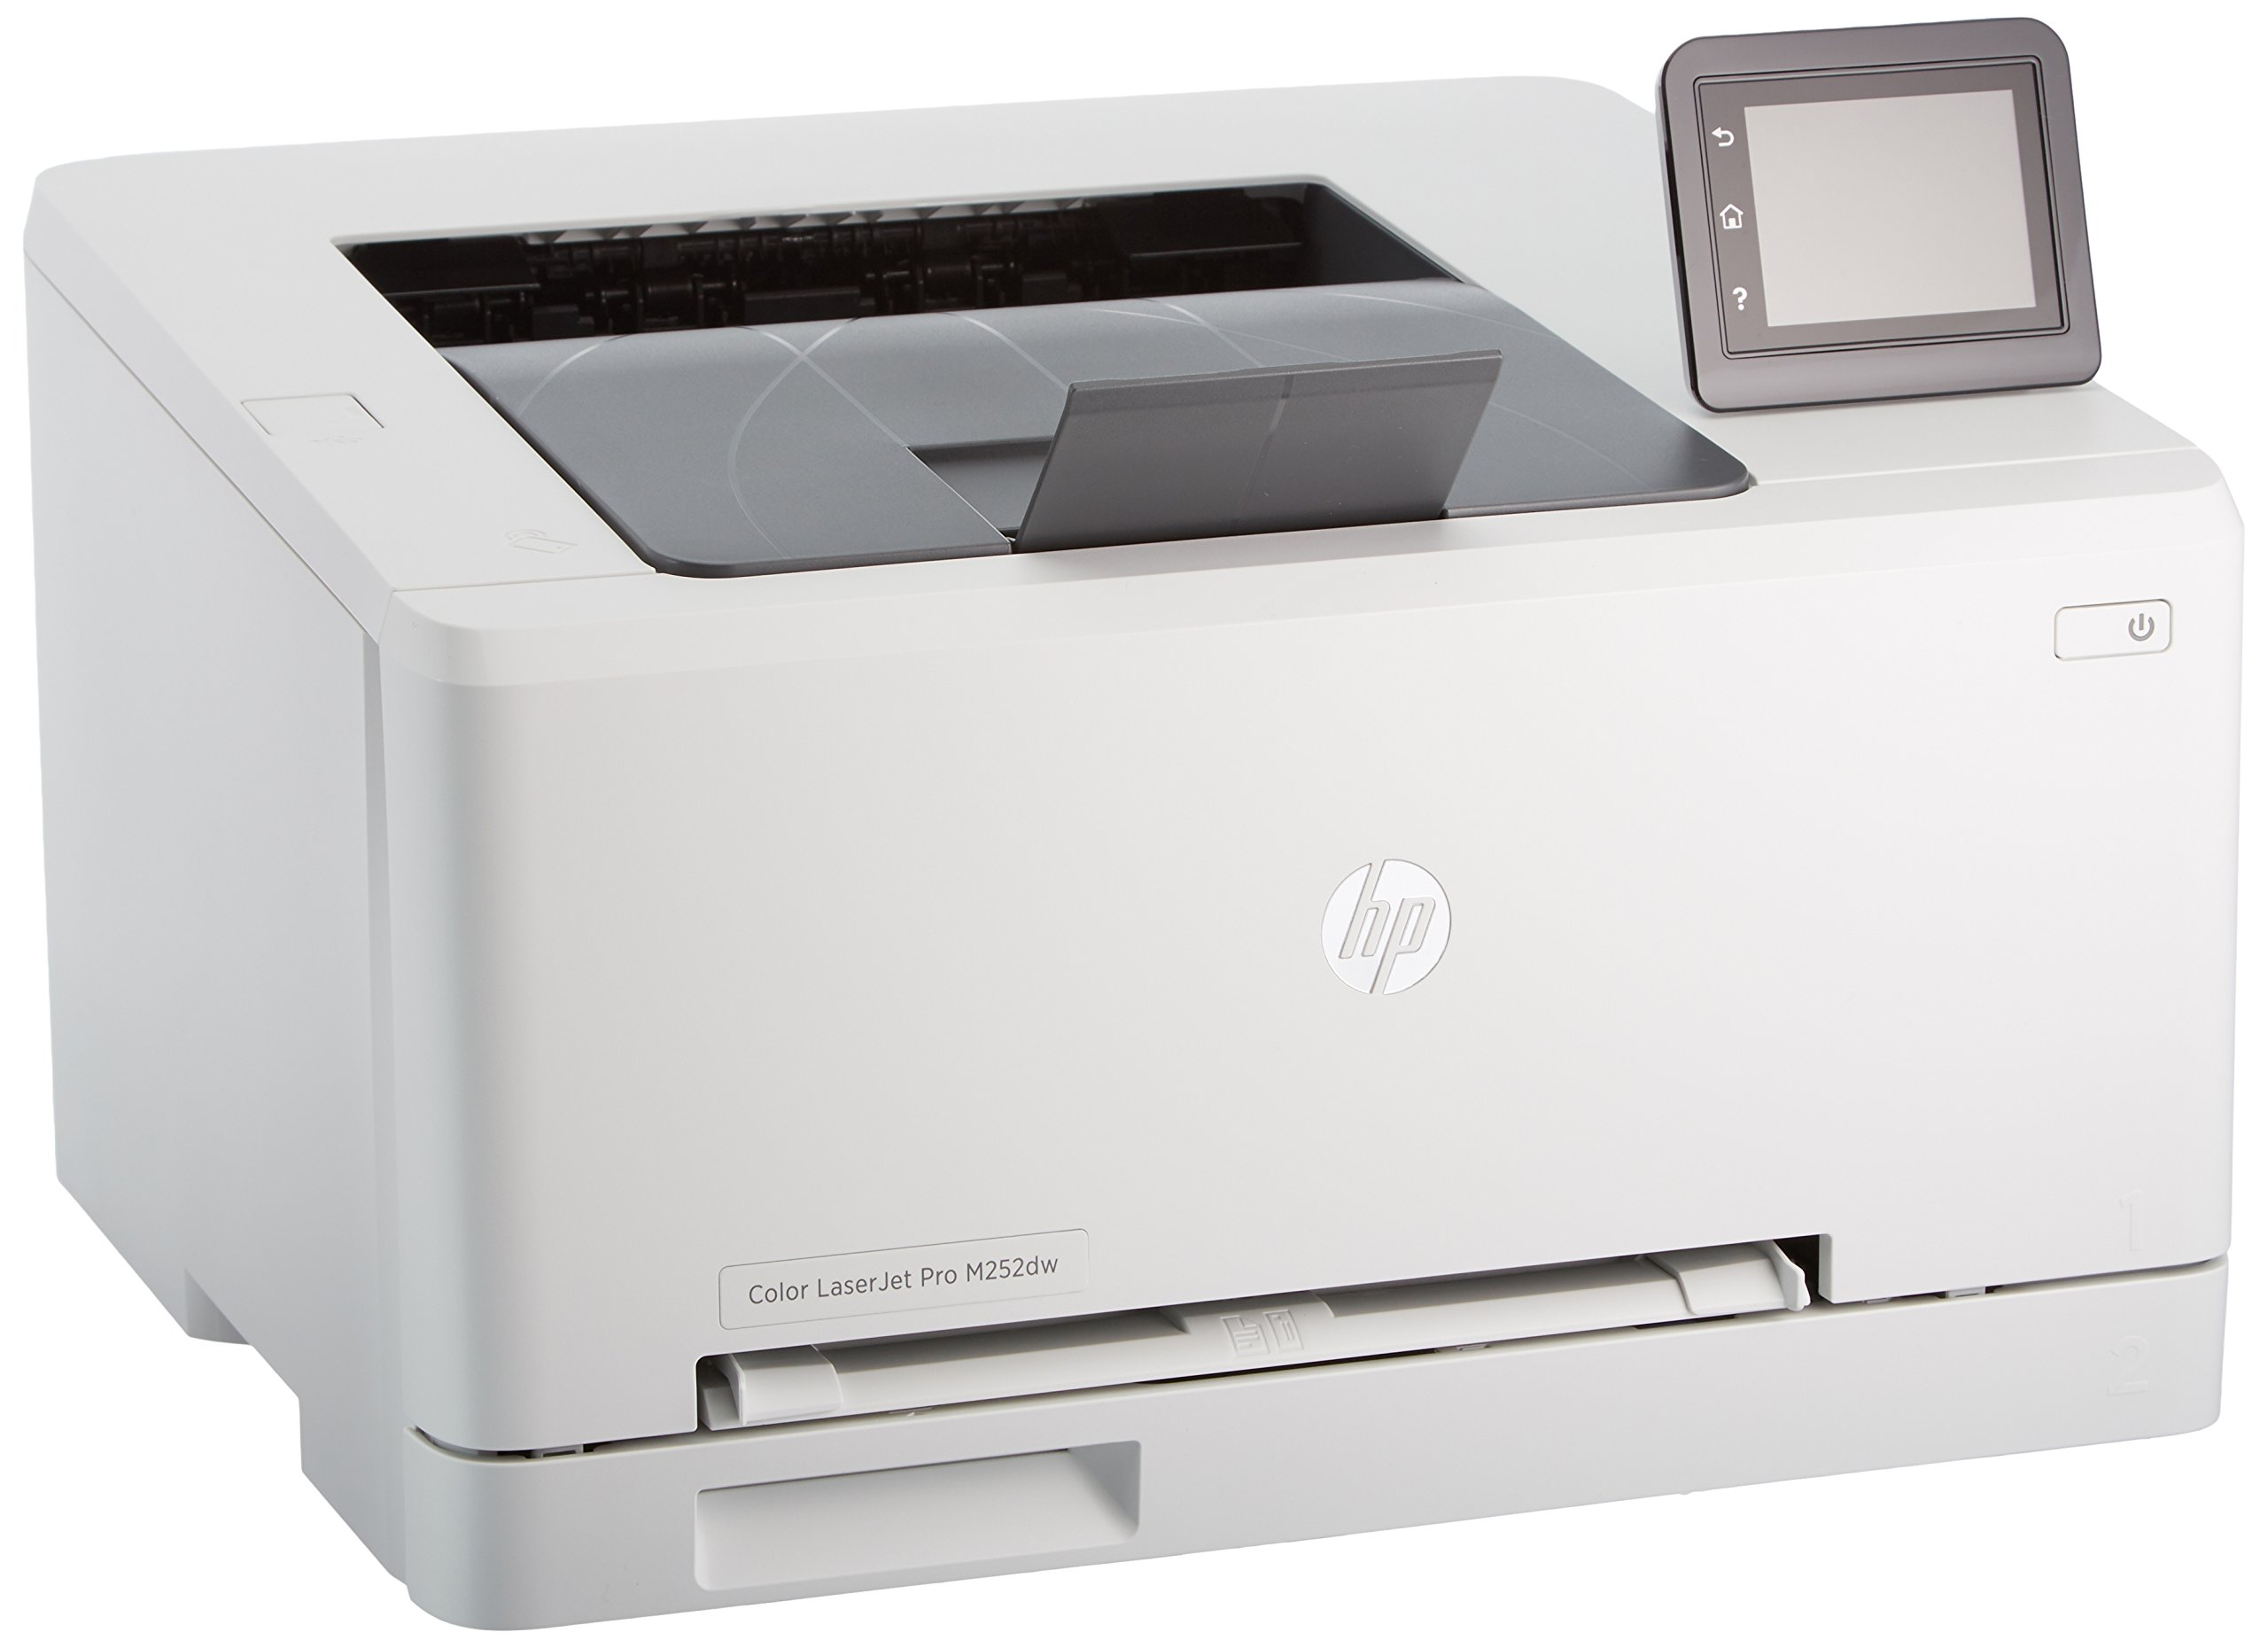 HP Laserjet Pro M252dw Wireless Color Printer, (B4A22A) by HP